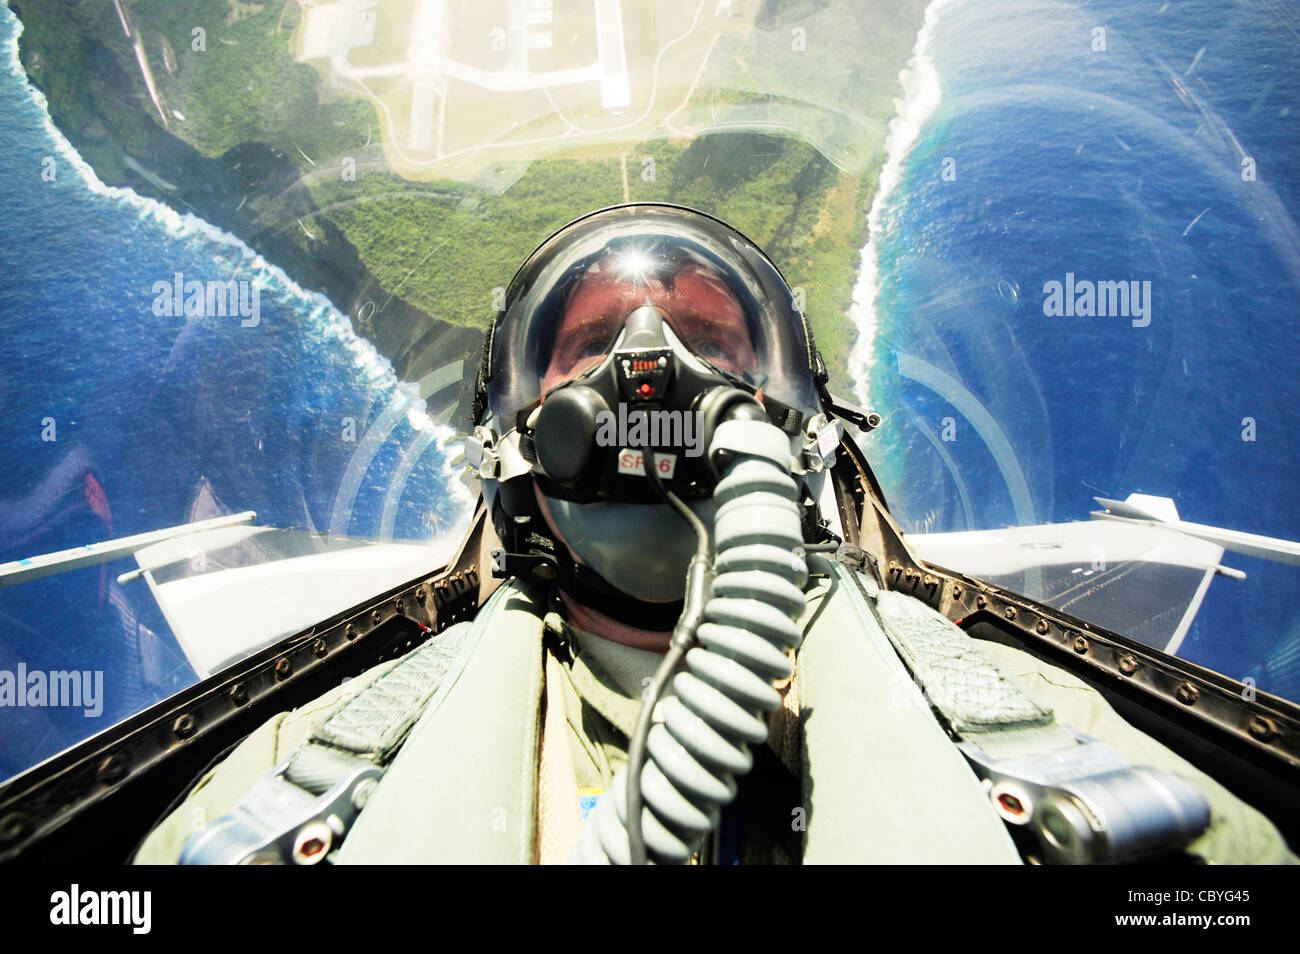 An F-16 Fighting Falcon pilot conducts an unrestricted vertical climb from Andersen Air Force Base, Guam, during - Stock Image